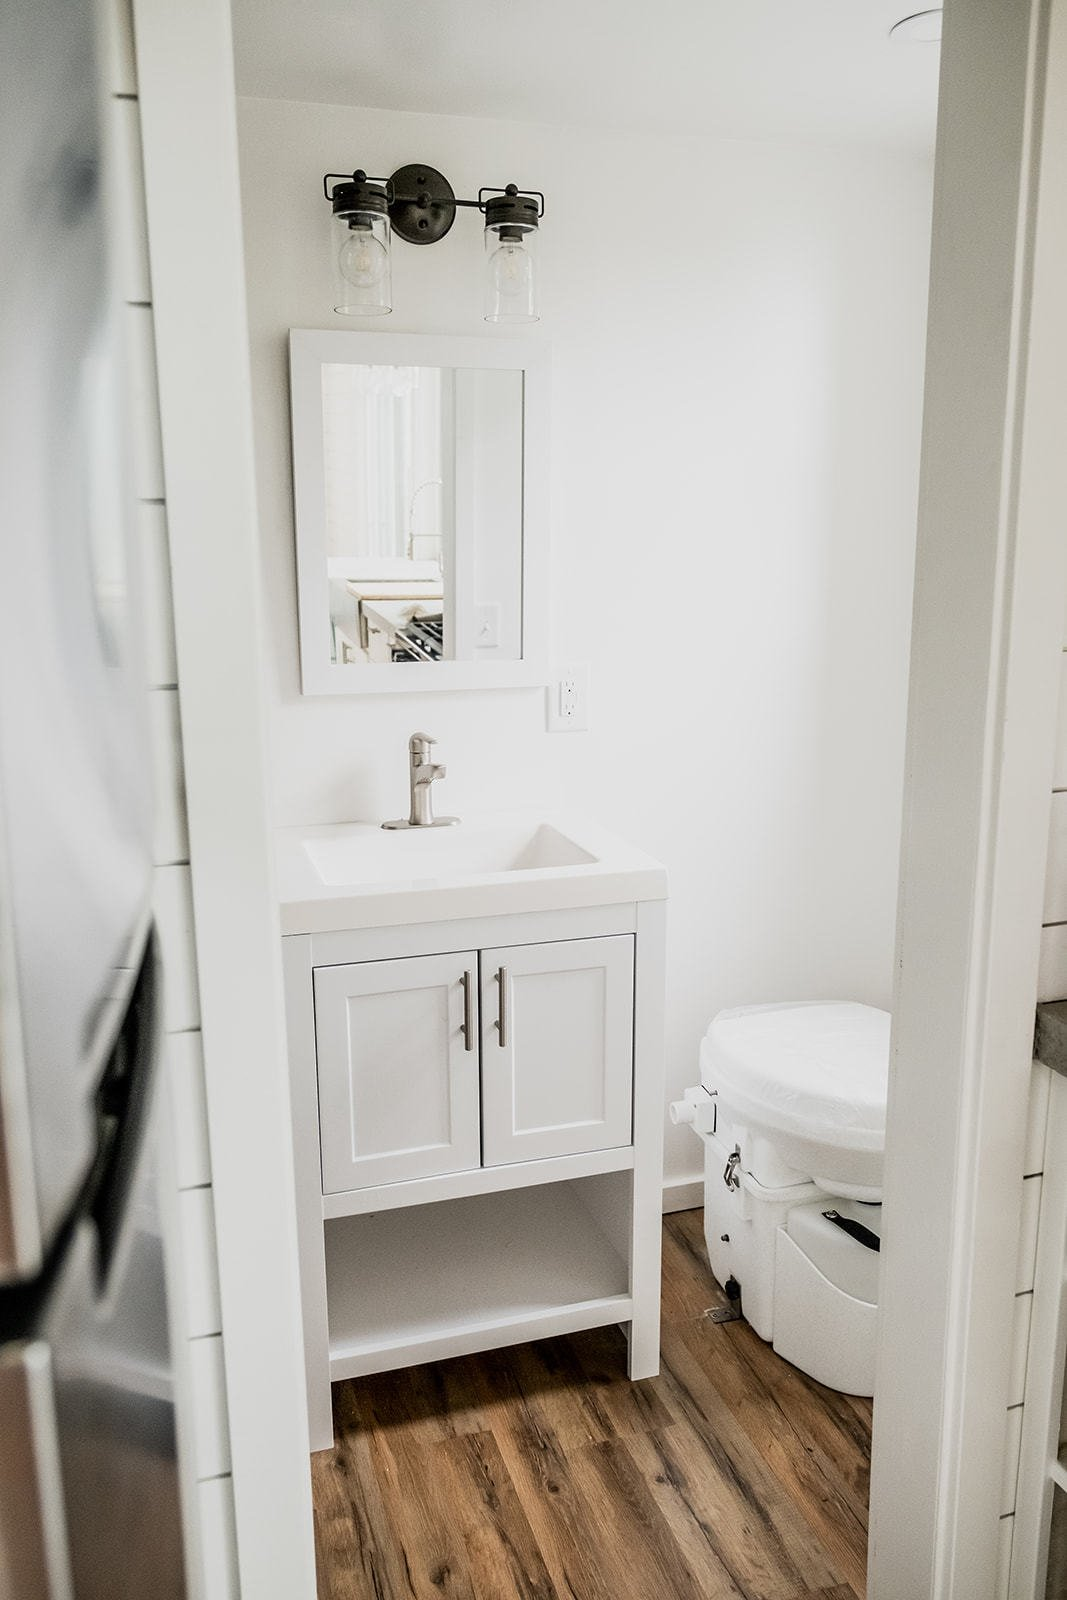 Bath, Granite, Wall Mount, Vessel, One Piece, Medium Hardwood, Wall, and Accent Both traditional and composting toilets are available to accommodate off-grid living.  Bath Vessel Accent Photos from A Hawaii-Based Couple Build a Luminous Tiny House in Just 25 Days